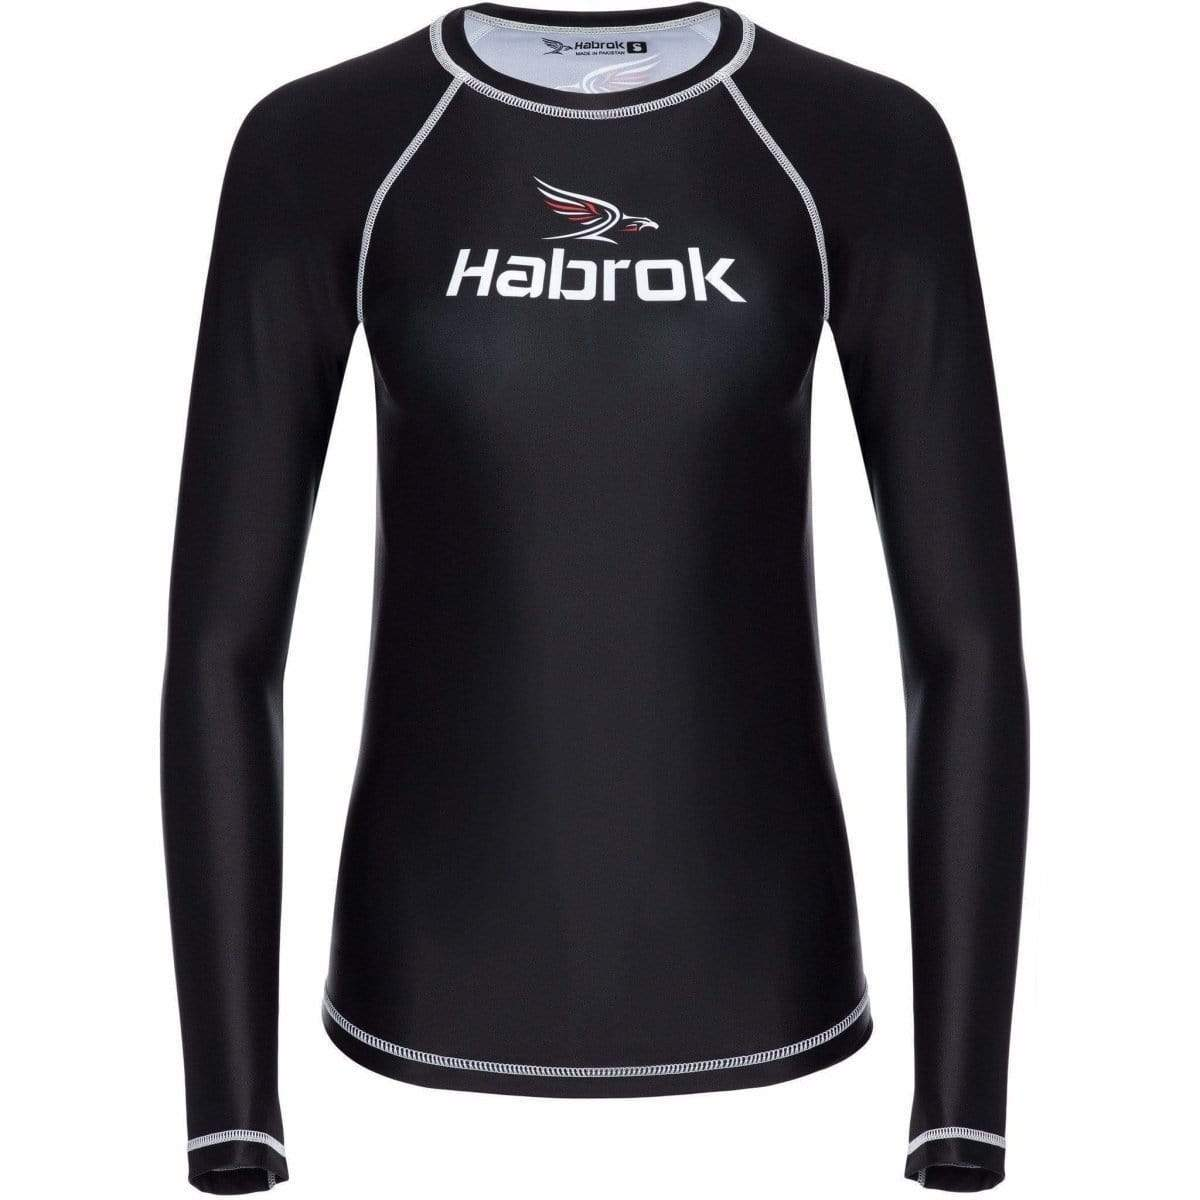 Habrok Rash Guard S / BLACK Performance Rash Guard | Women Performance Rash Guard | Women Atheletes | Habrok